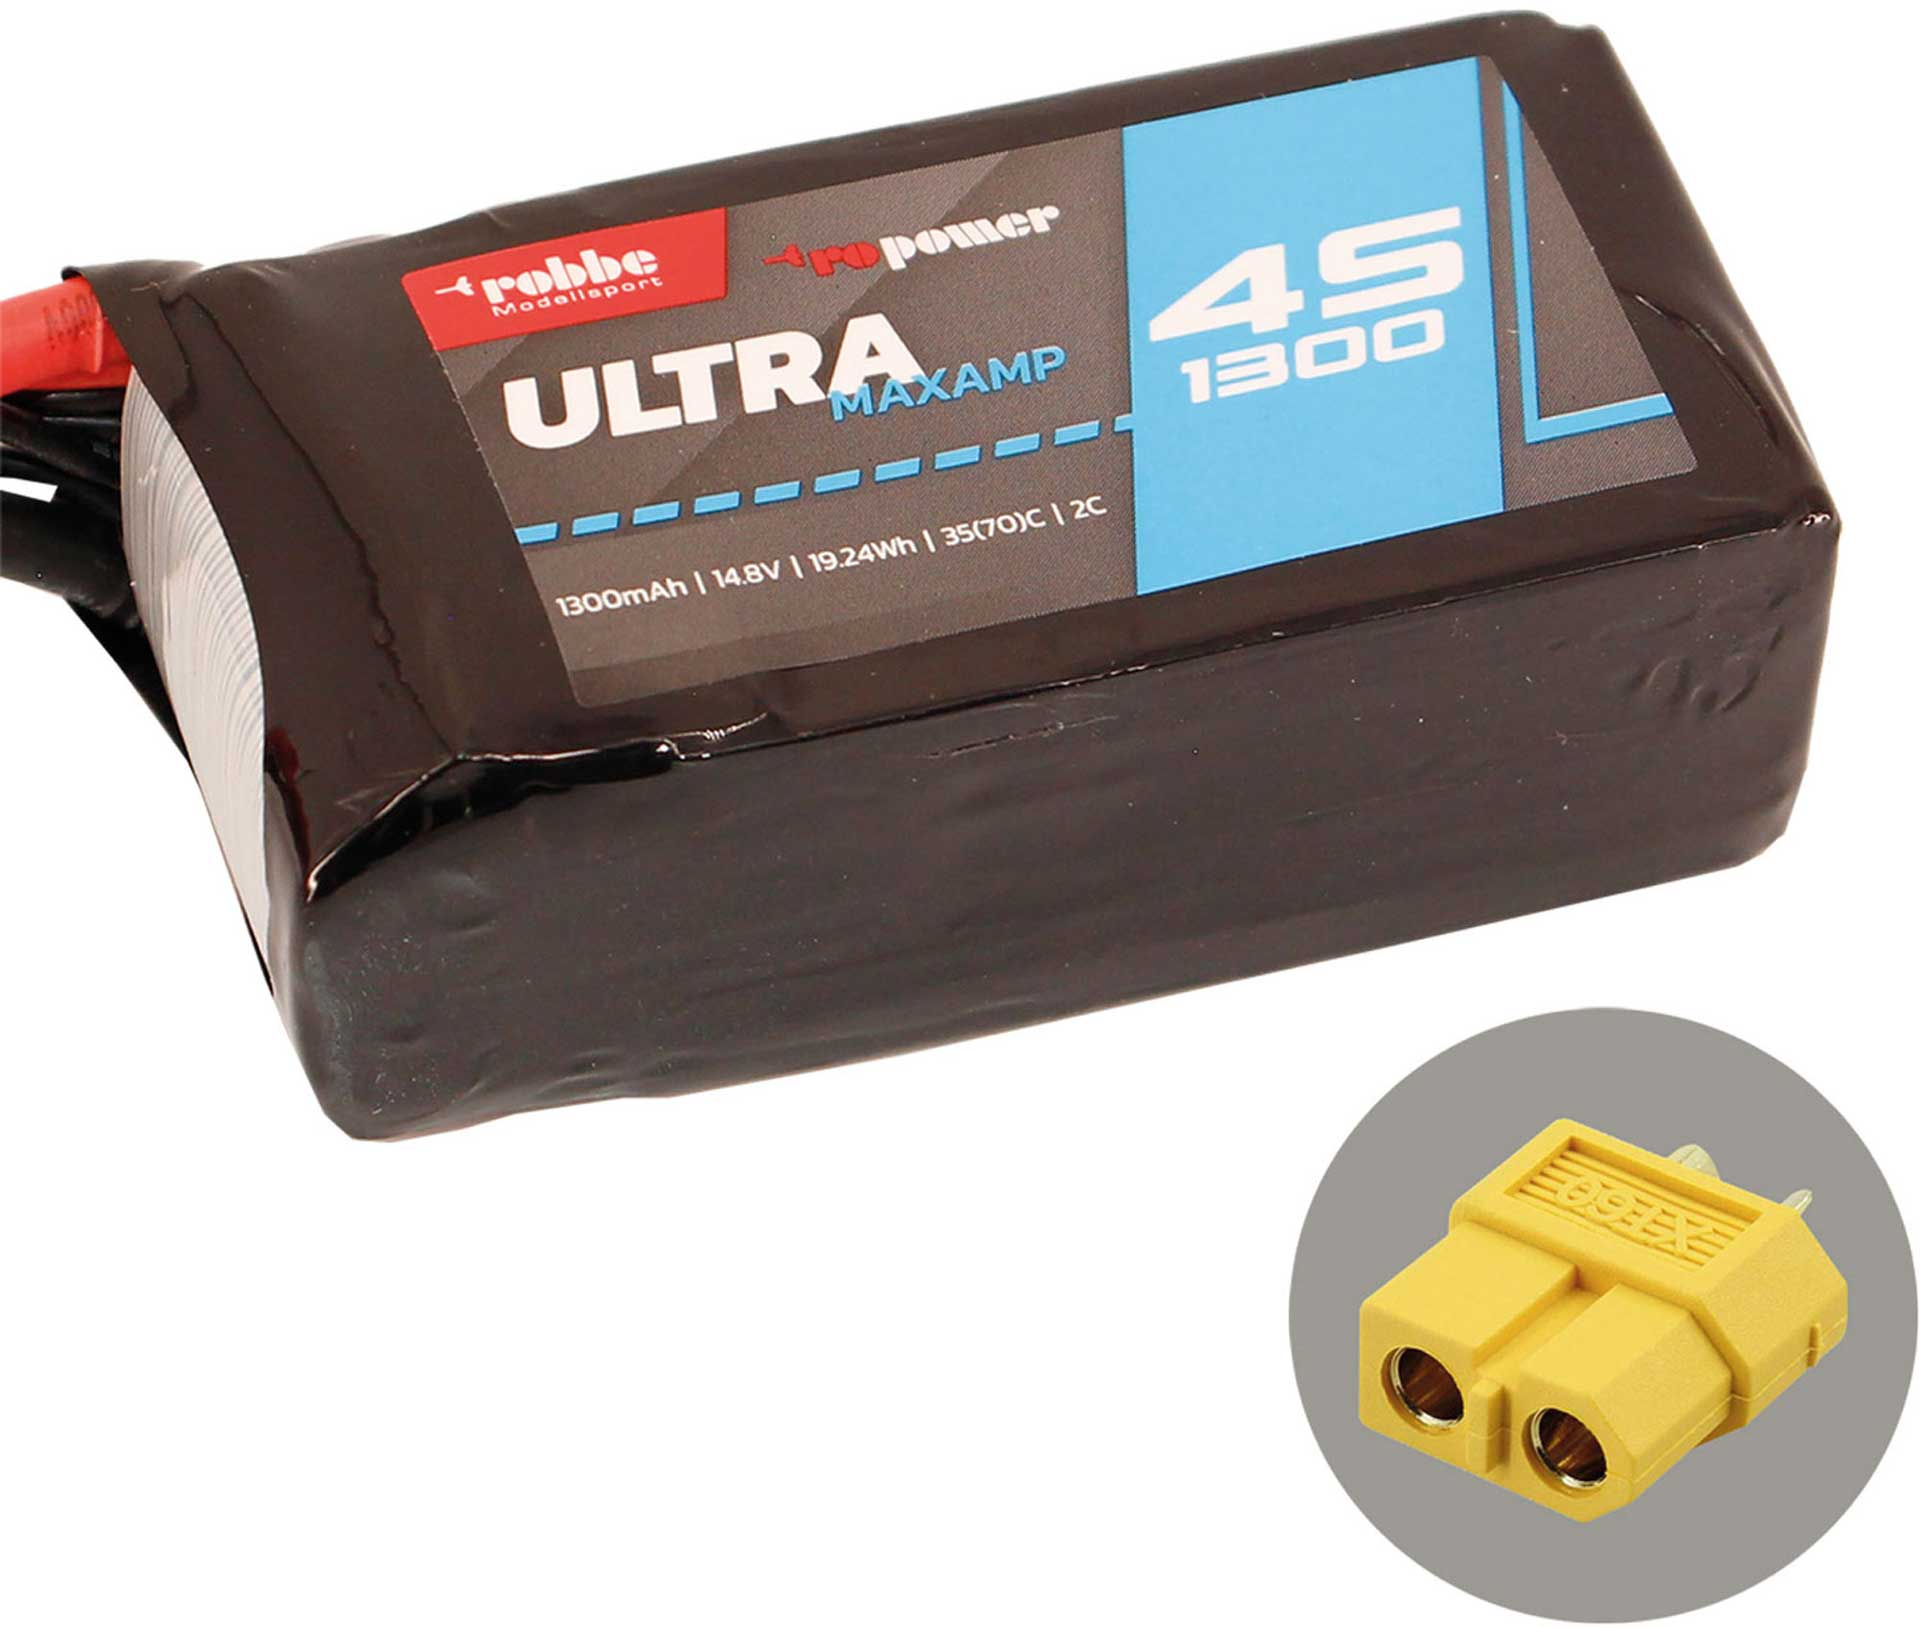 ROBBE RO-POWER ULTRA MAXAMP 1300MAH 14,8 VOLT